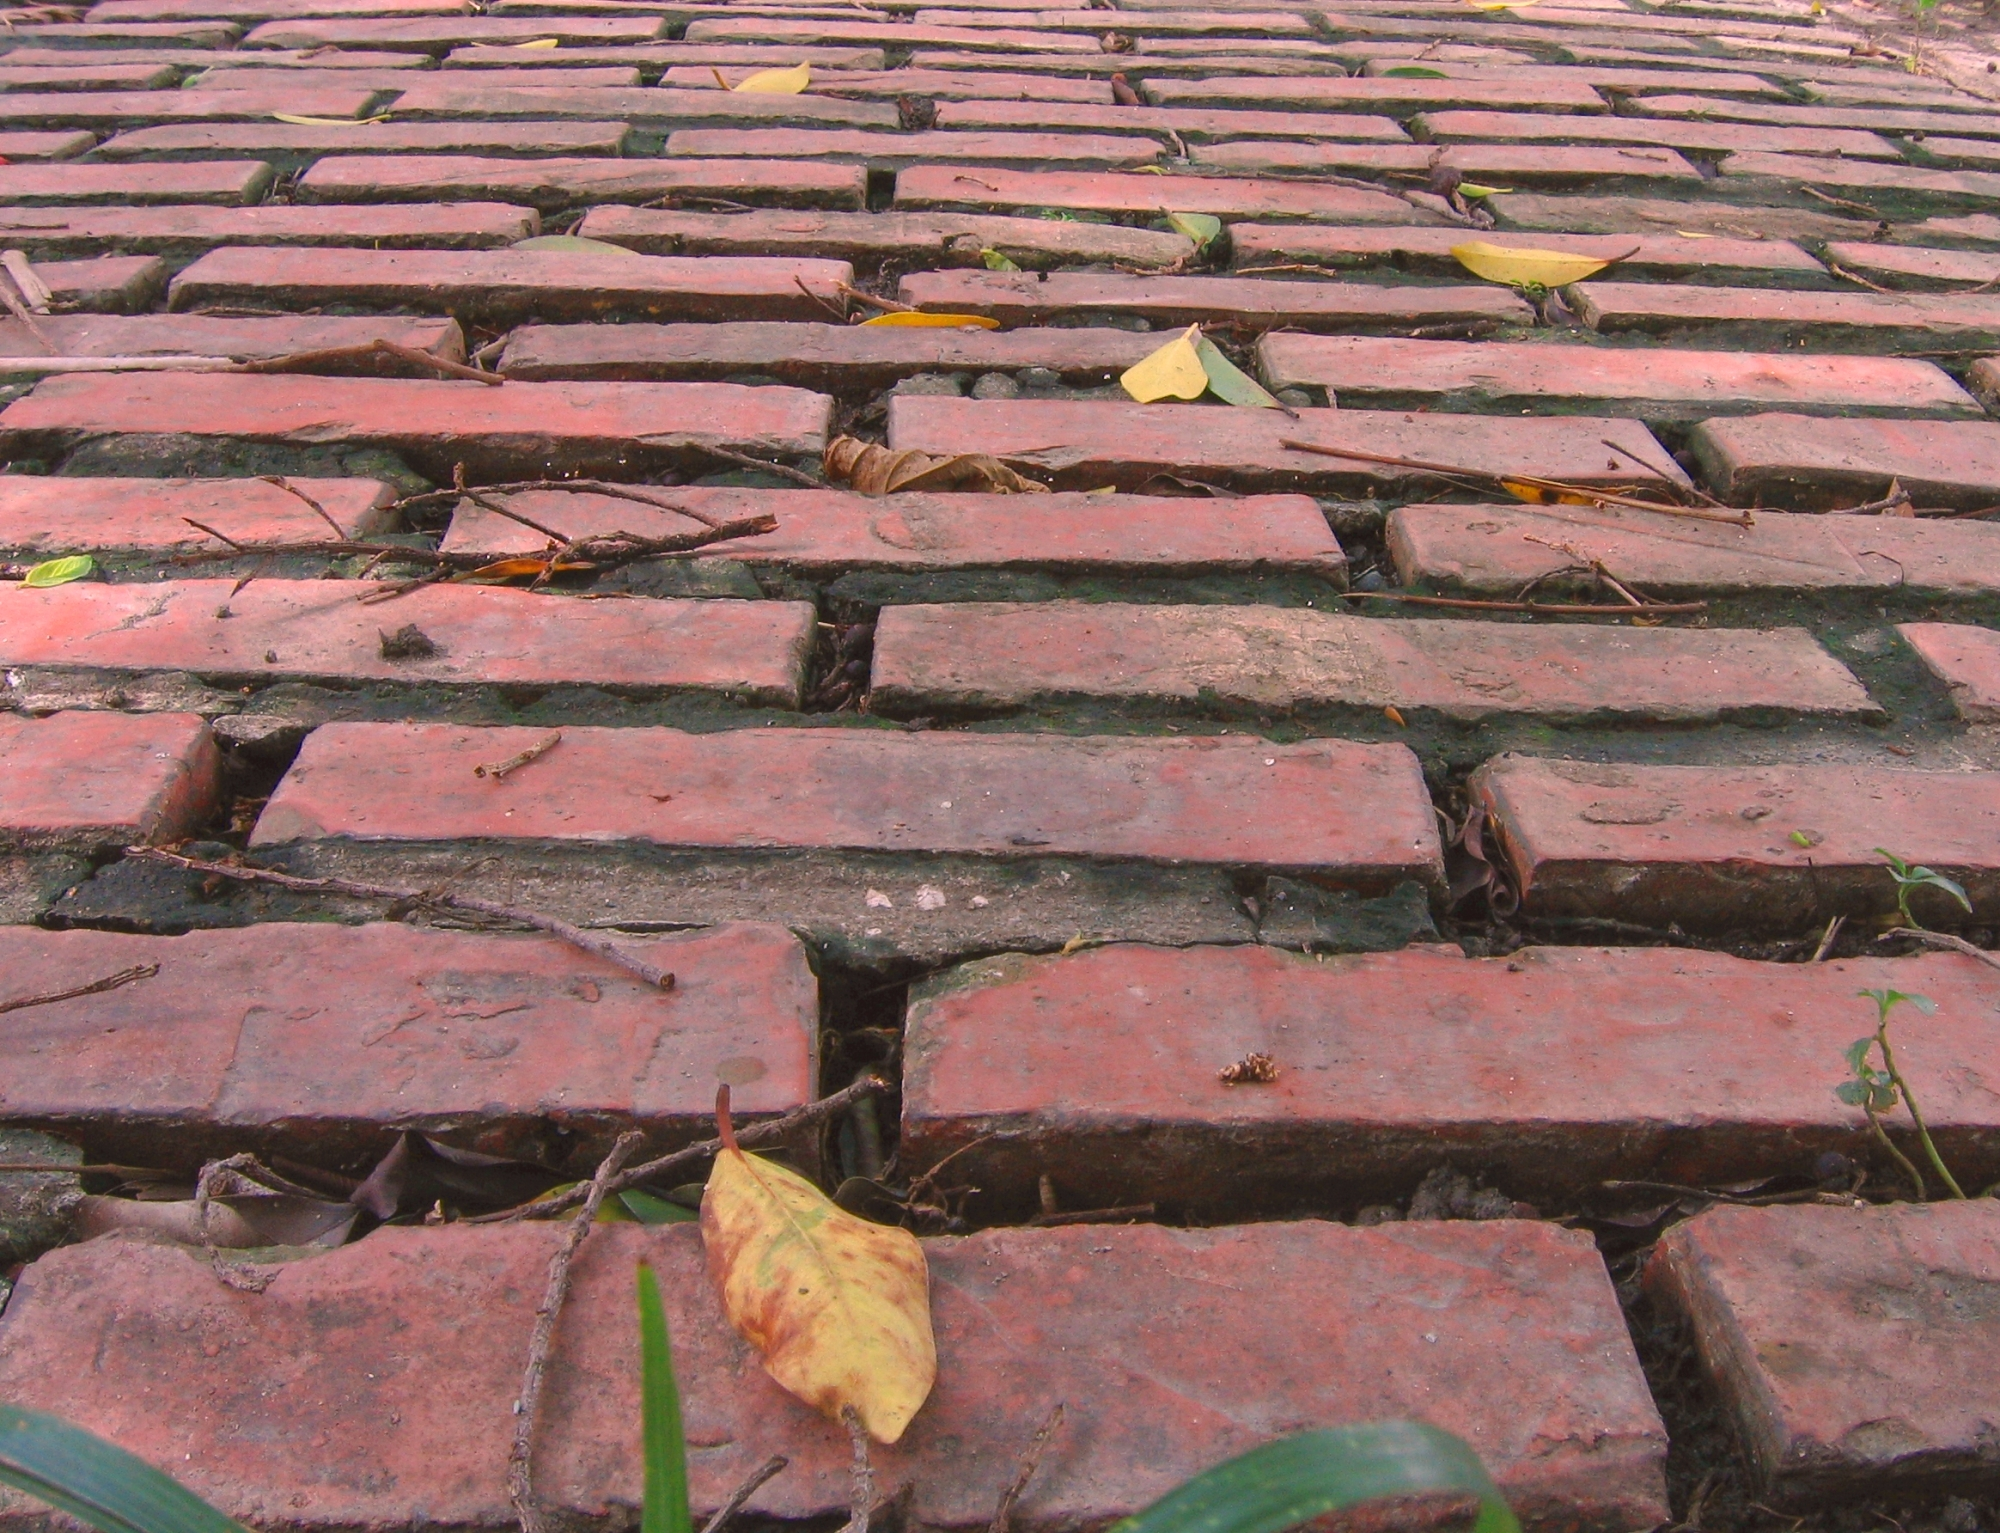 Old Red Brick Road, Ancient, Quaint, Used, Uneven, HQ Photo